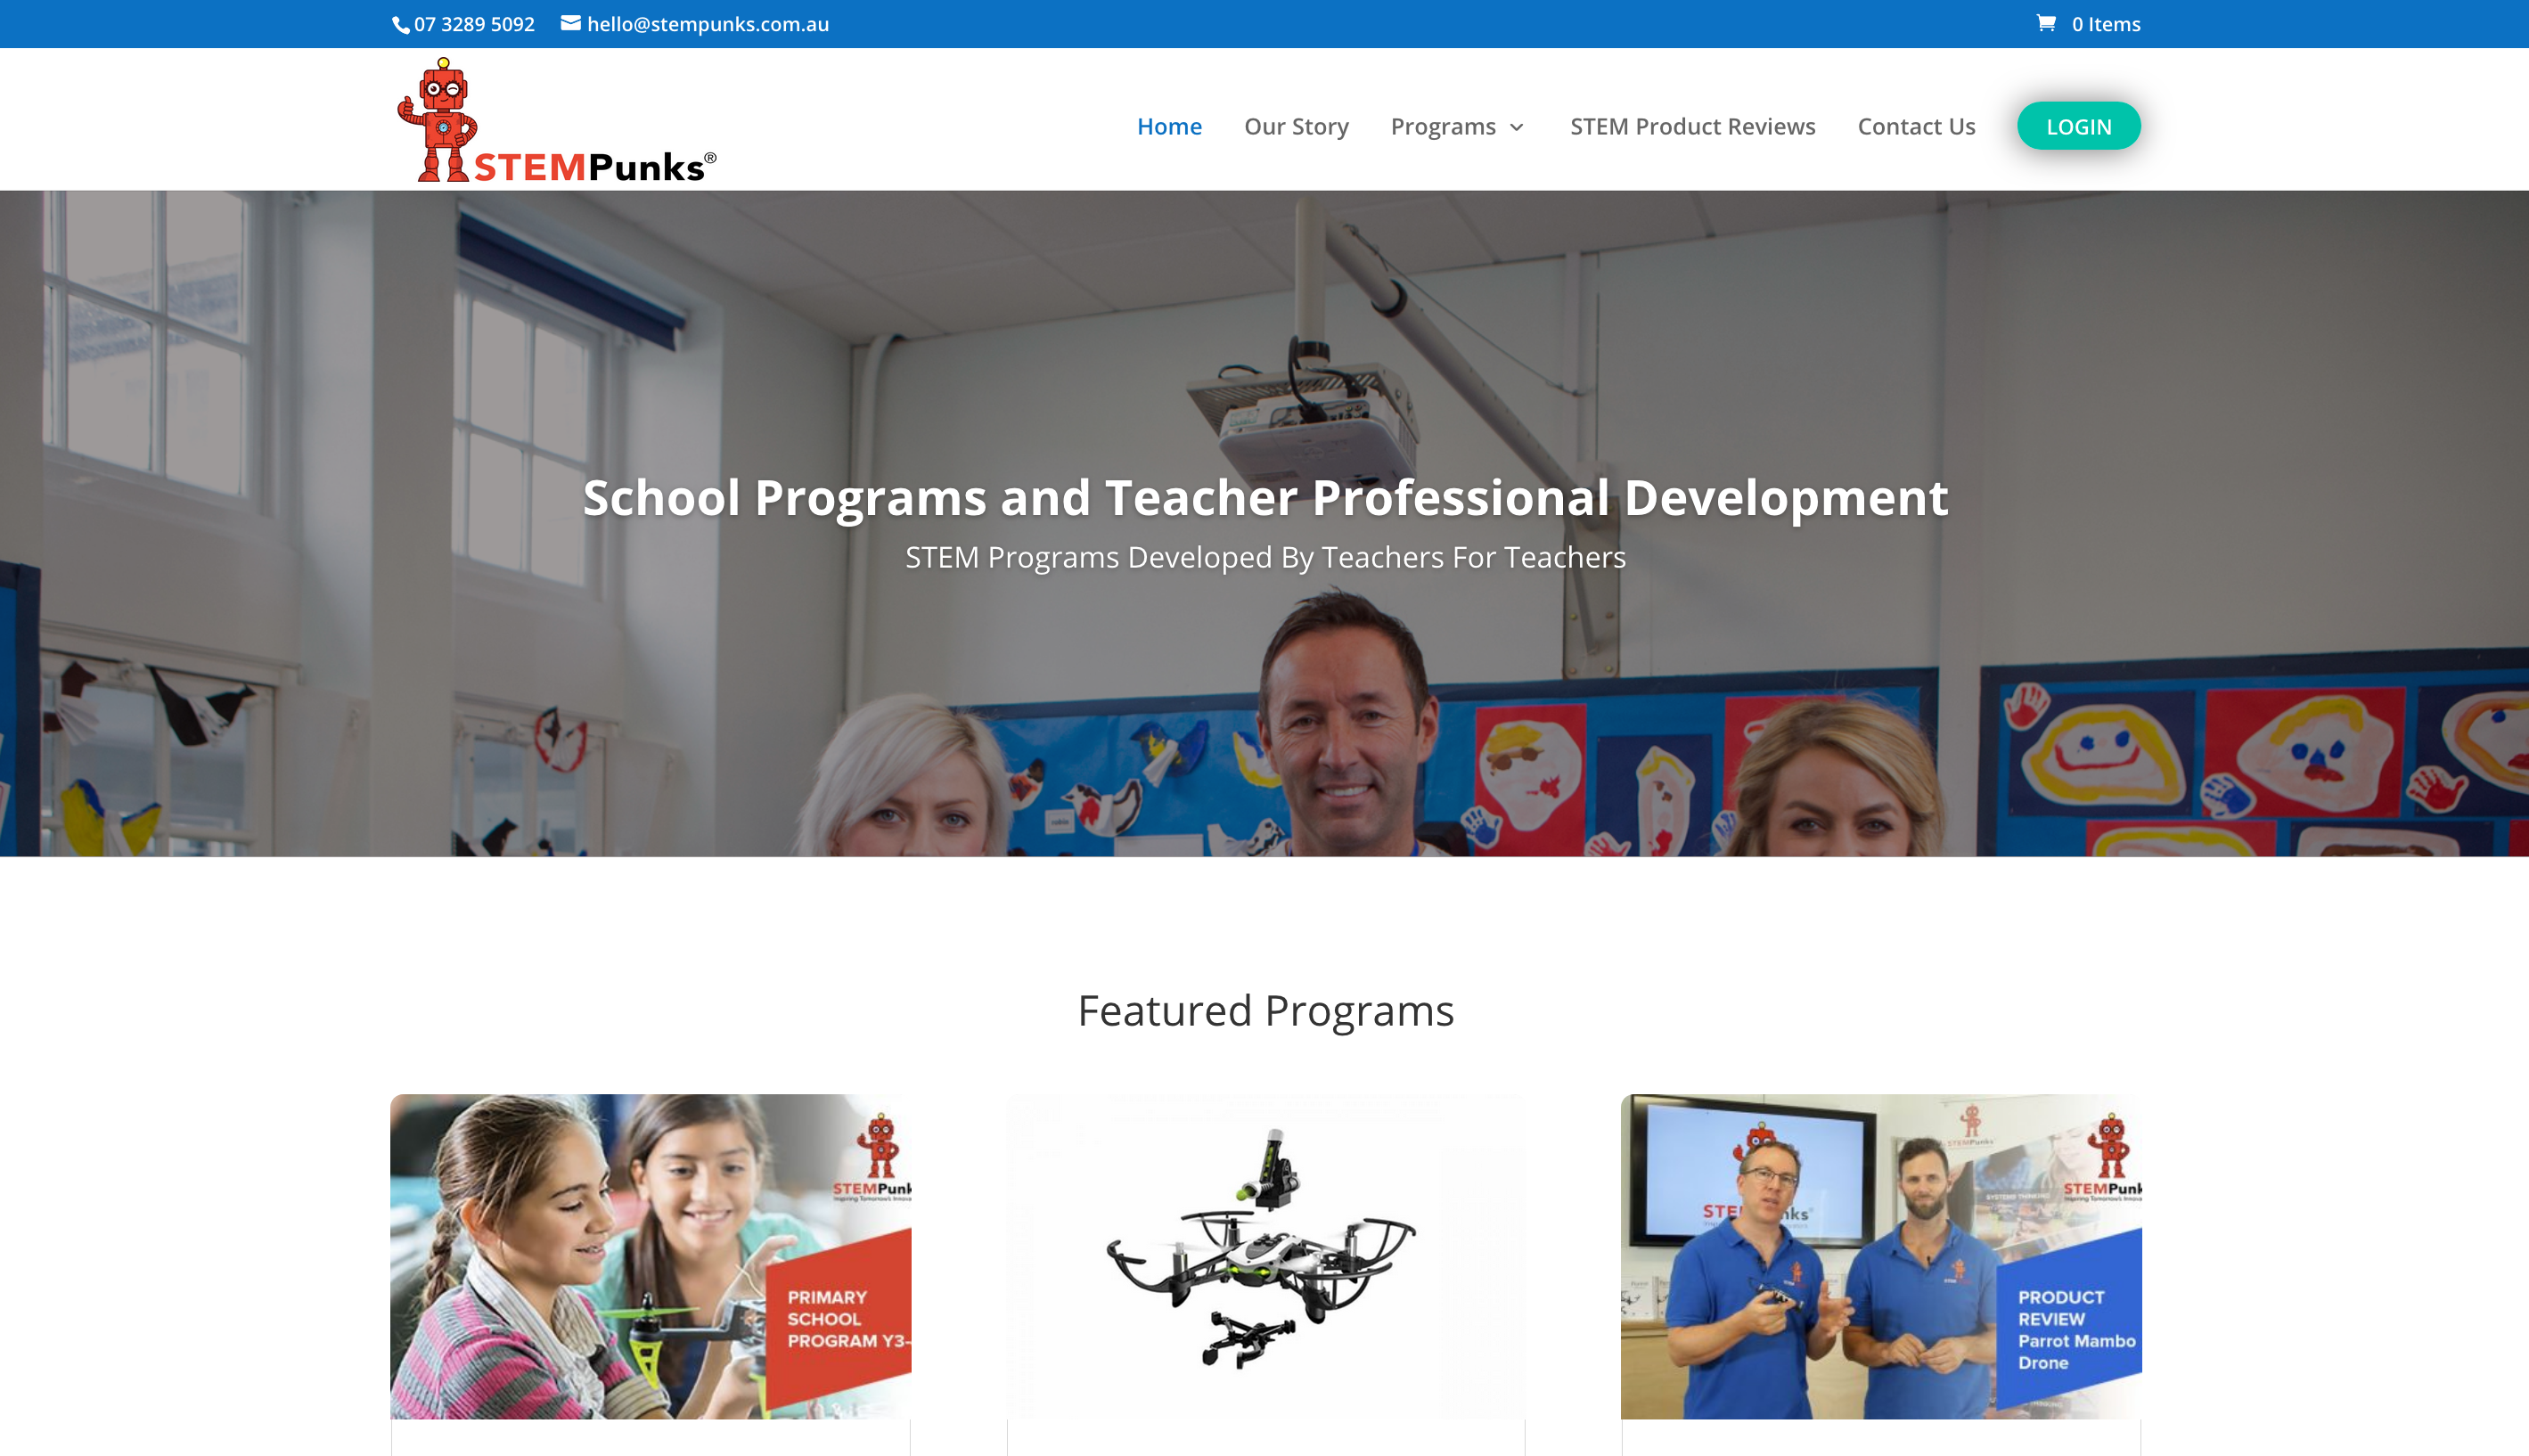 STEMPunks STEM teacher professional development online courses with custom built LMS e-learning eLearning platform